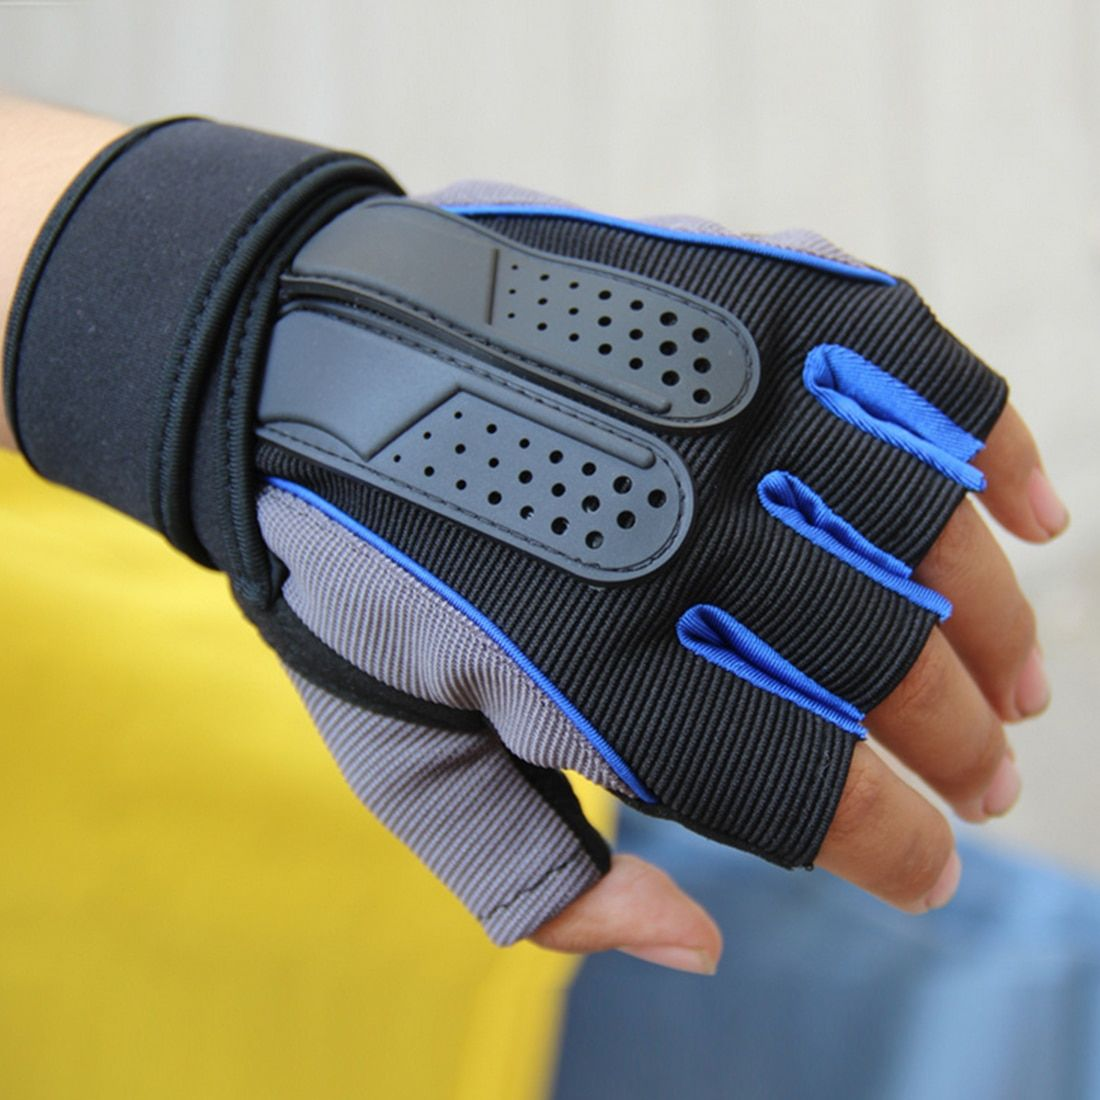 Gym Fitness Gloves Protective Crossfits Sports Weight Lifting Workout Guantes